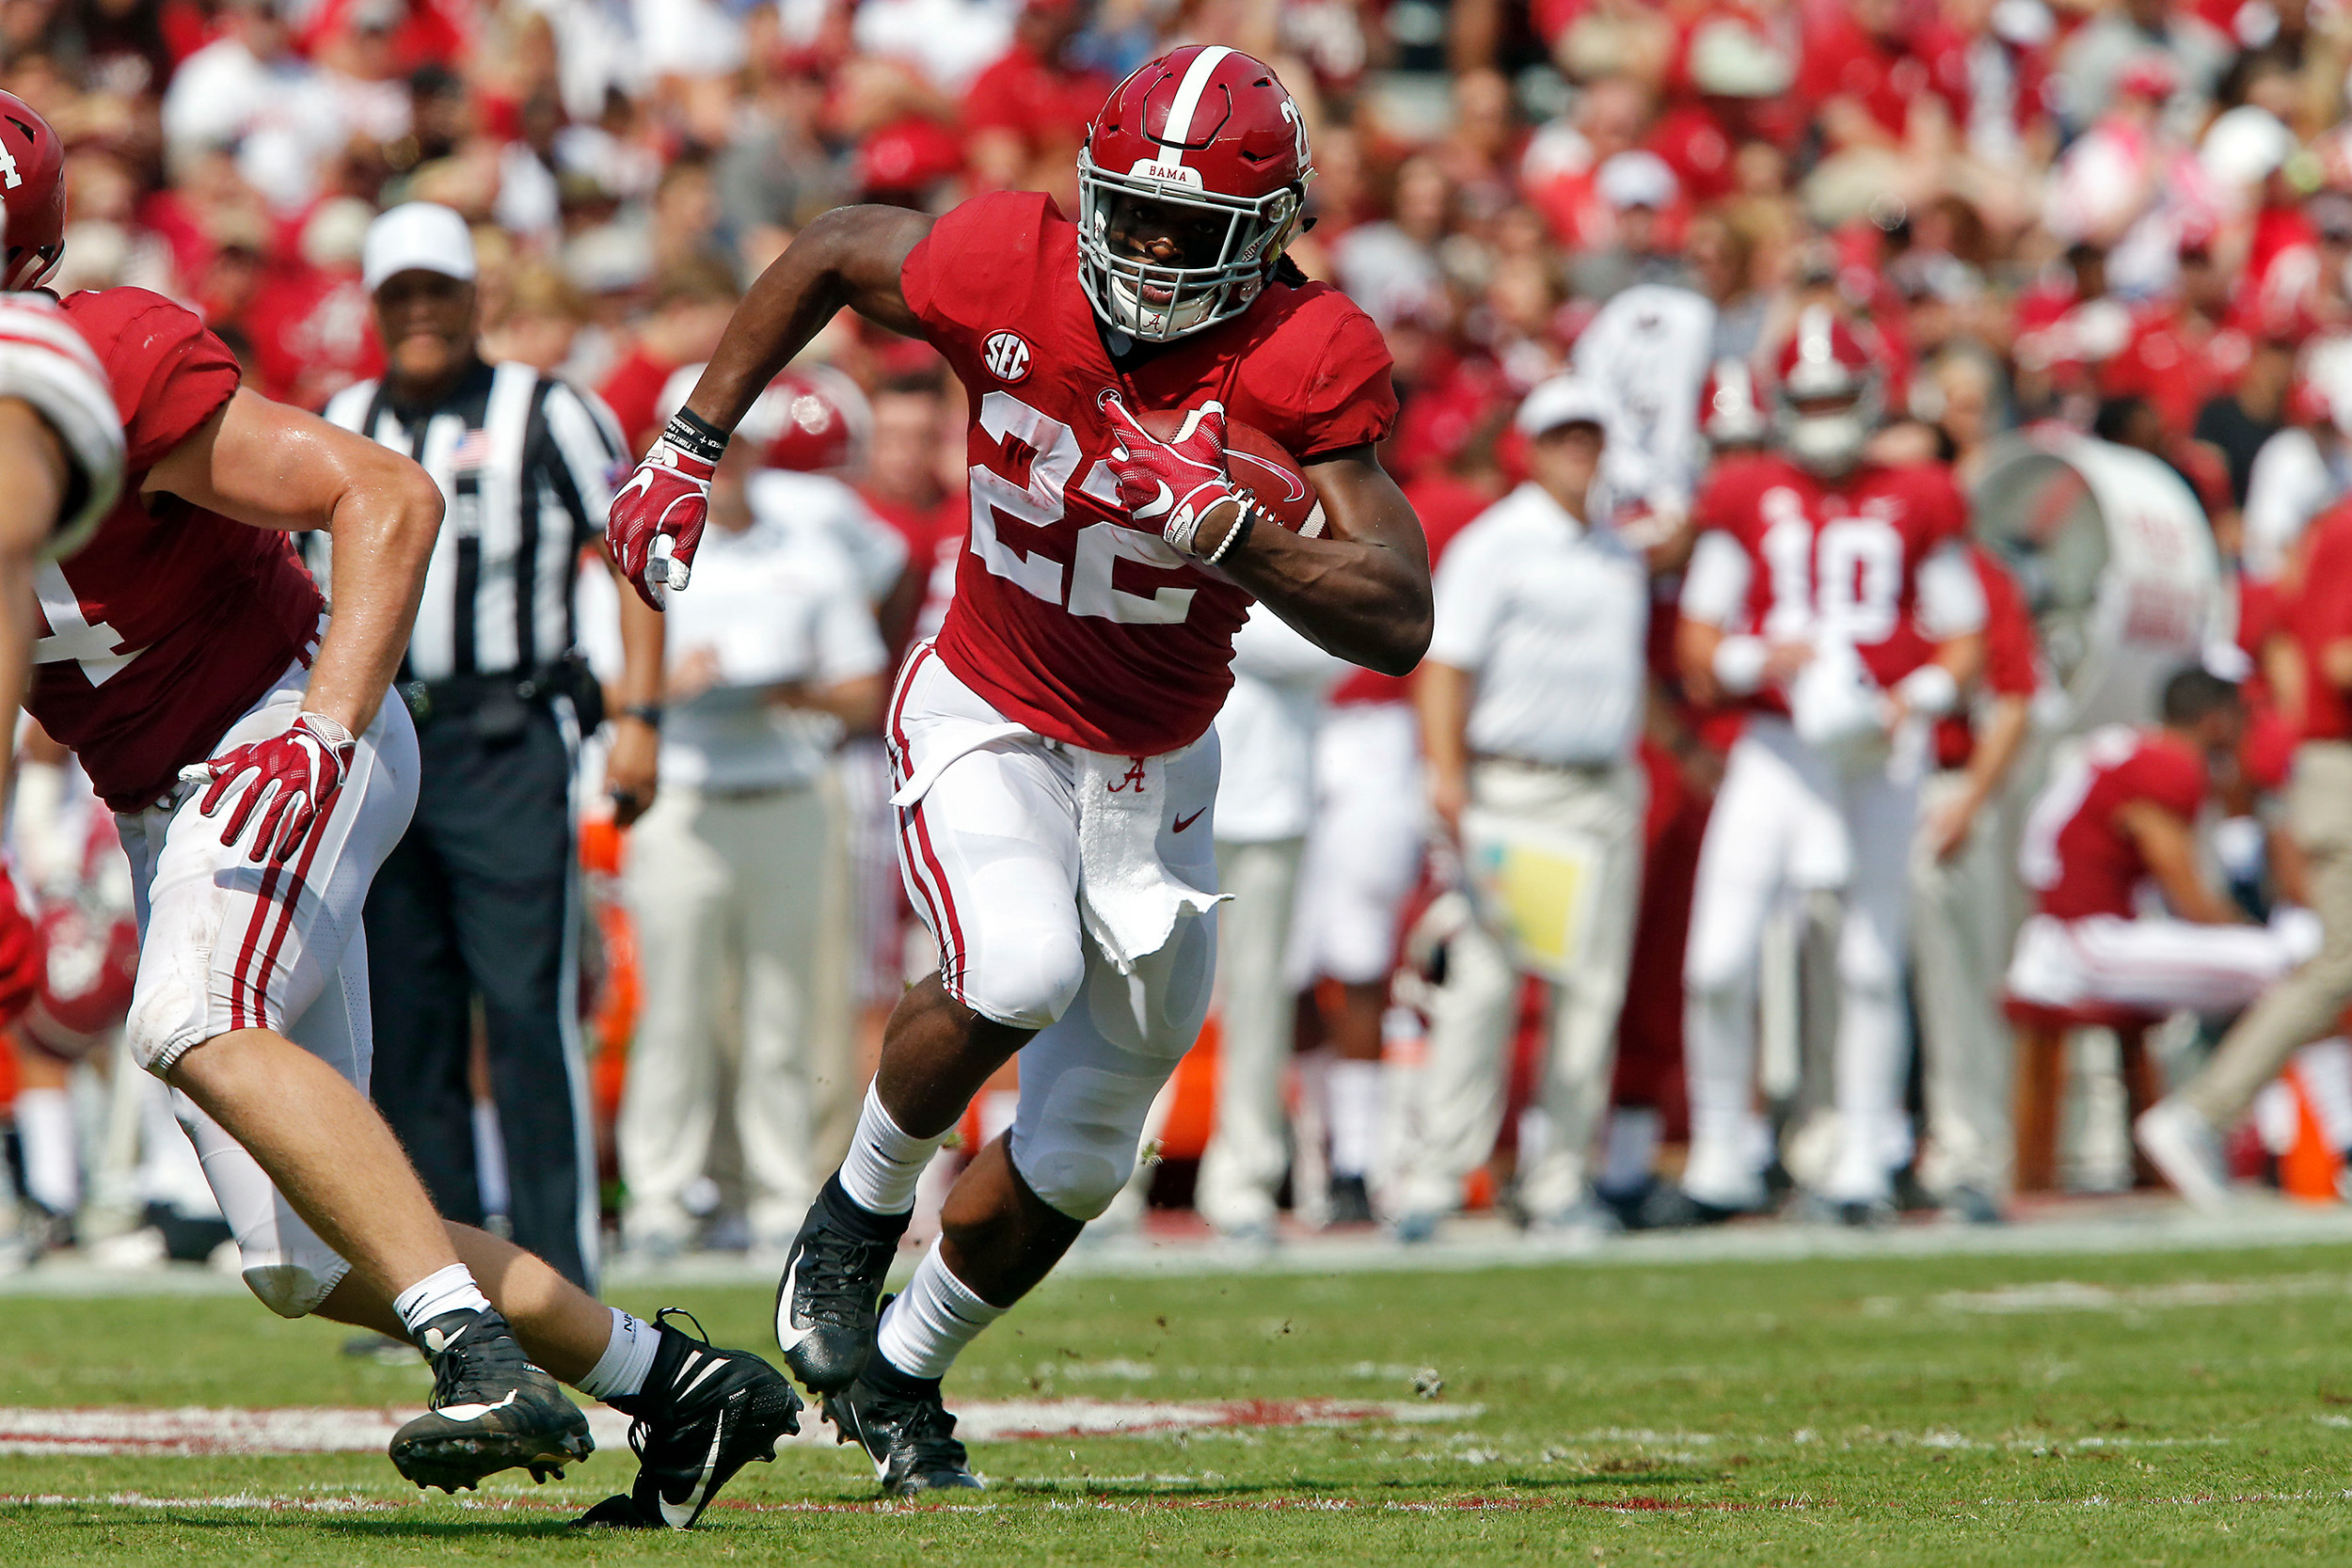 Alabama Crimson Tide running back Najee Harris (22) rushes for a first down at Bryant-Denny Stadium in Tuscaloosa, Al on September 29, 2018. Jason Clark / Daily Mountain Eagle